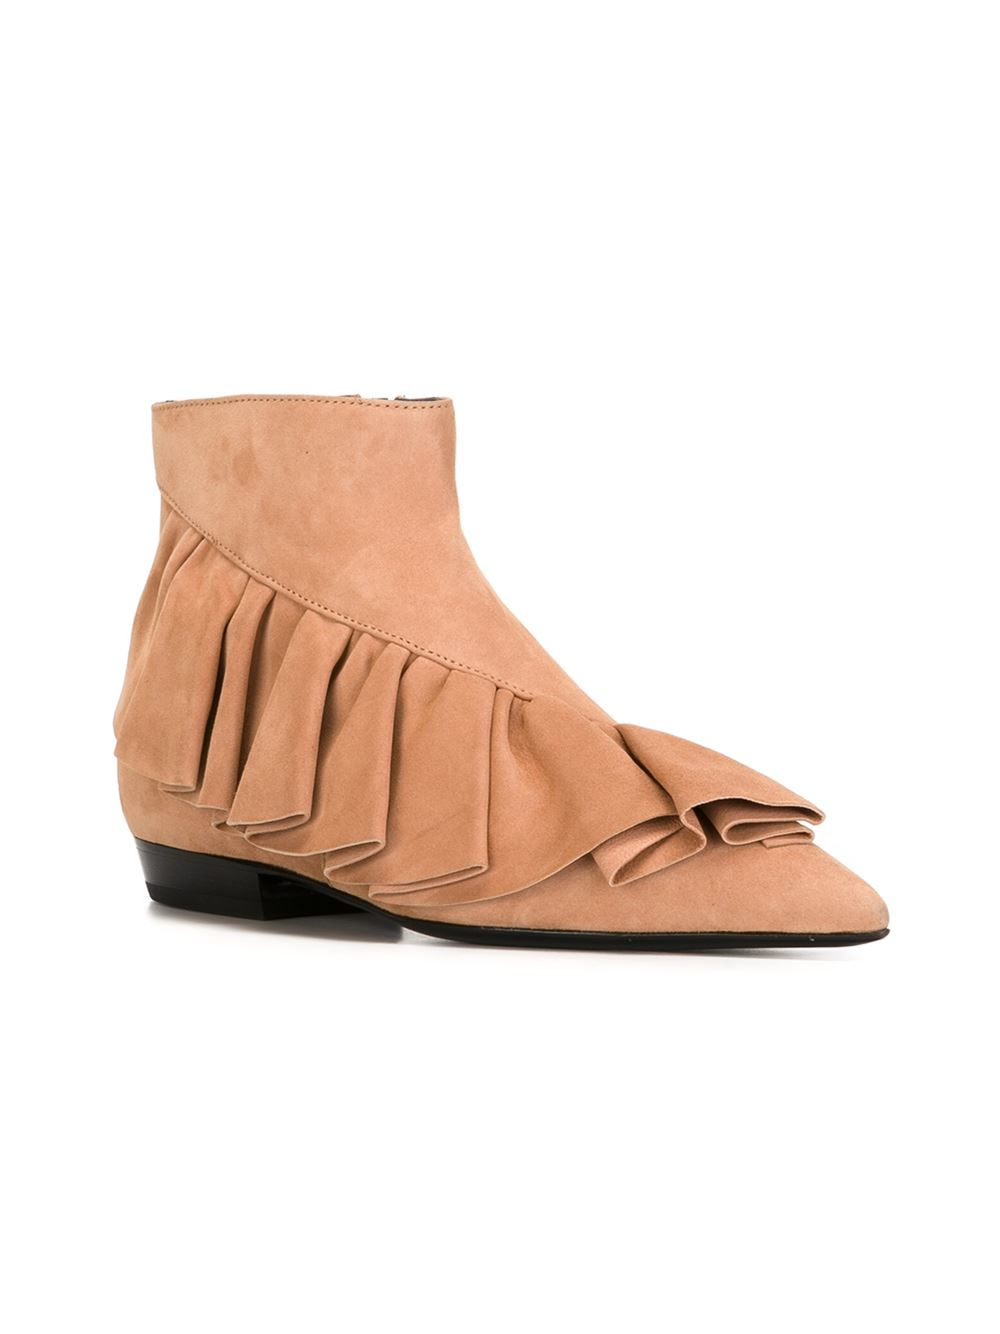 JW Anderson Leather Ruffle Ankle Boots in Natural